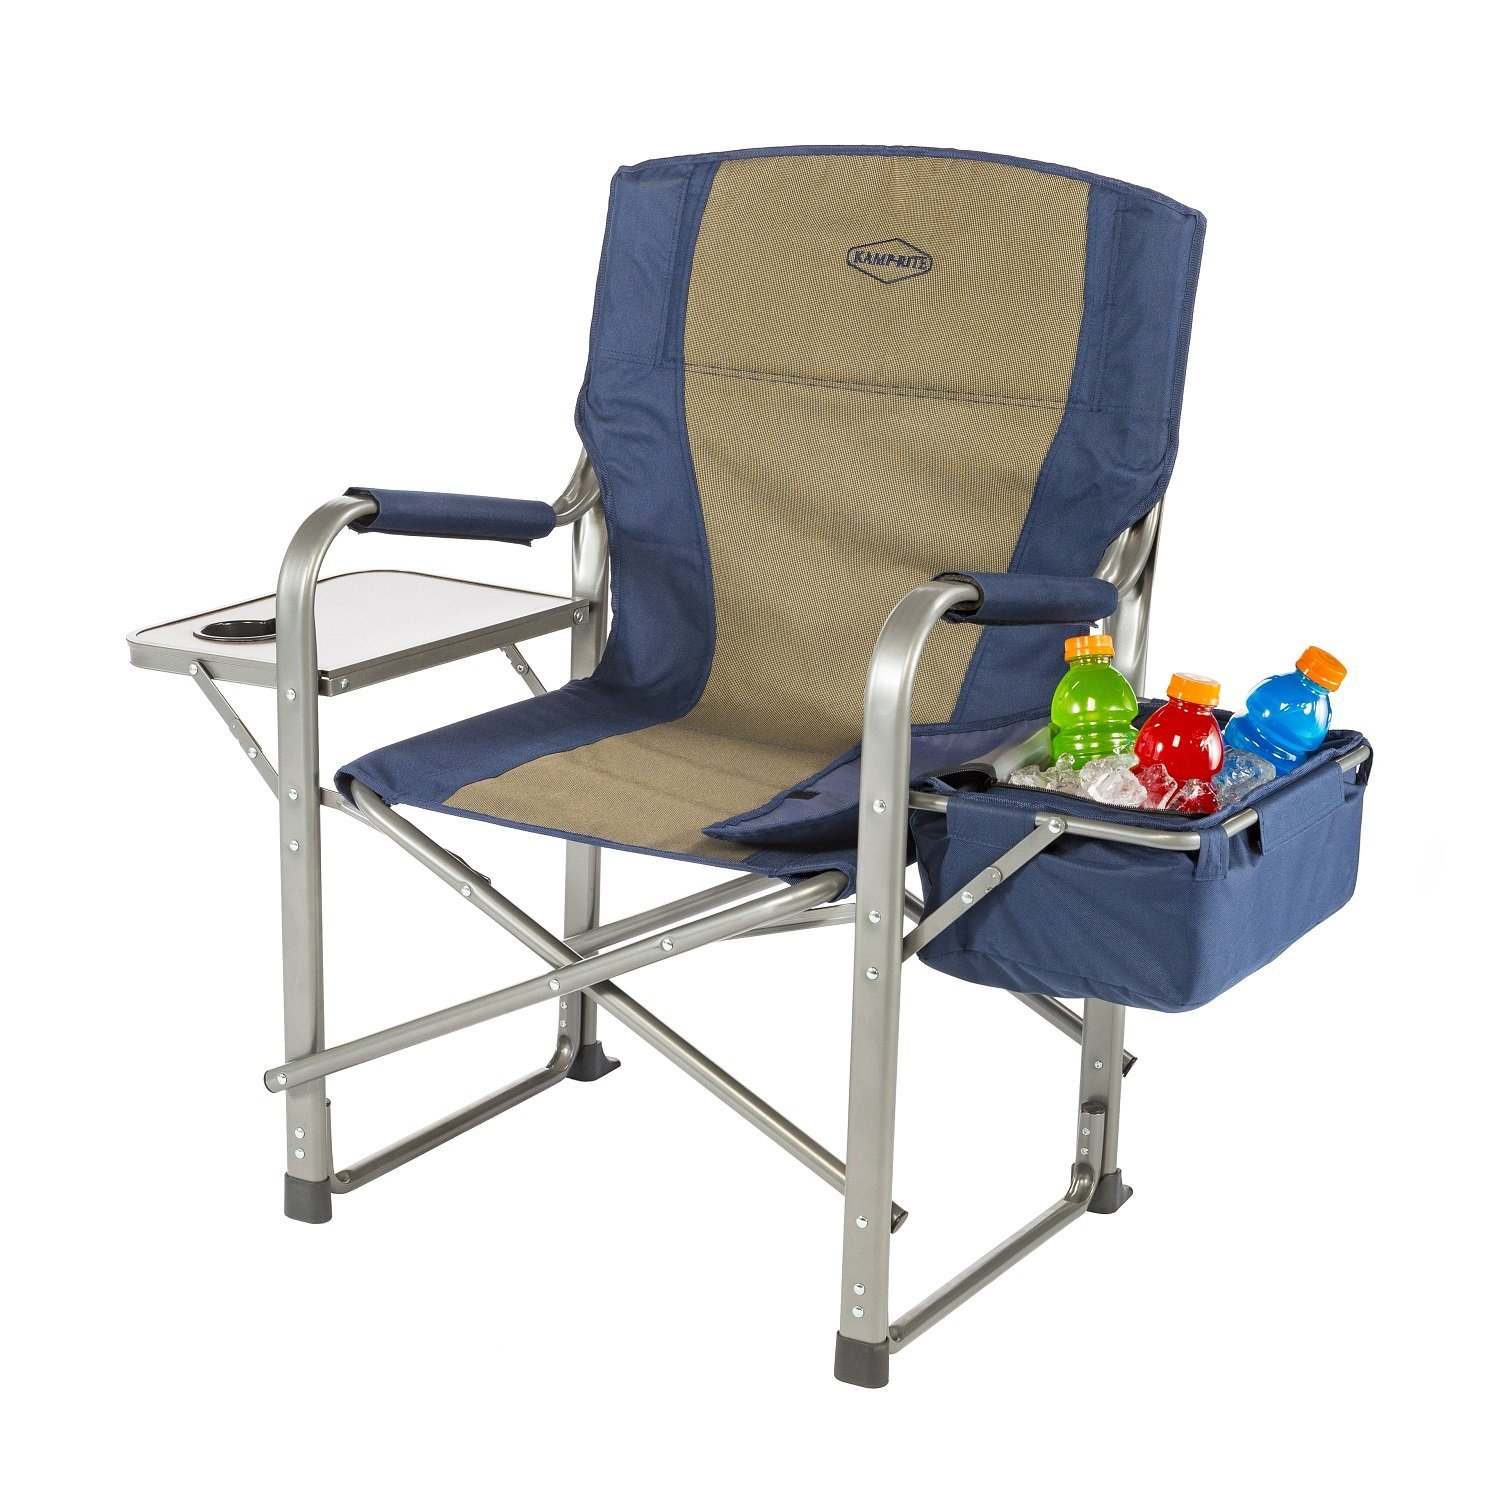 best camping chairs make every more comfy kamp rite director chair with side table and cooler outdoor beverage mirage mirrored accent mint end west elm square dining small couch